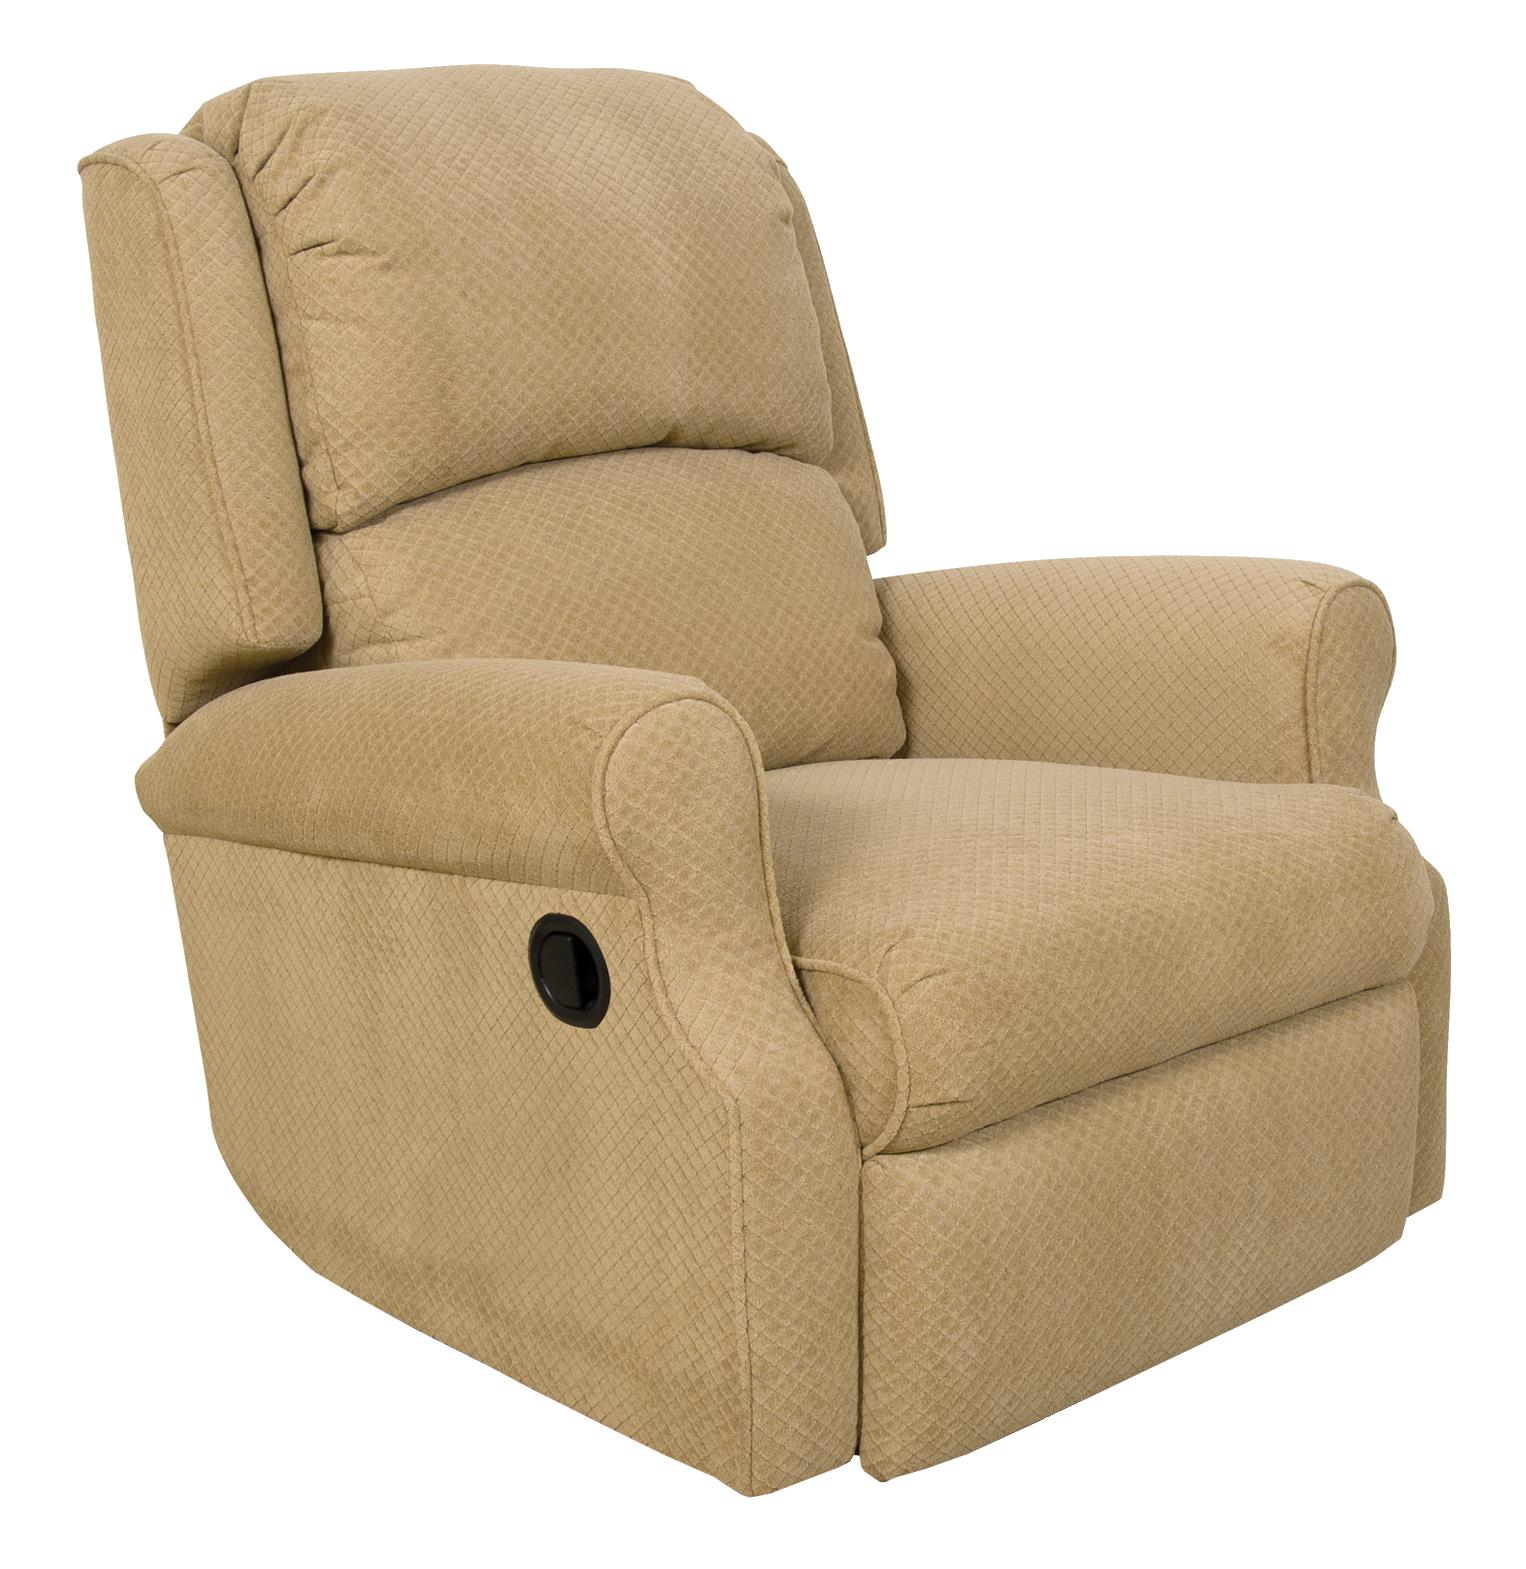 Marybeth Min Prox Recliner with Power by England at VanDrie Home Furnishings